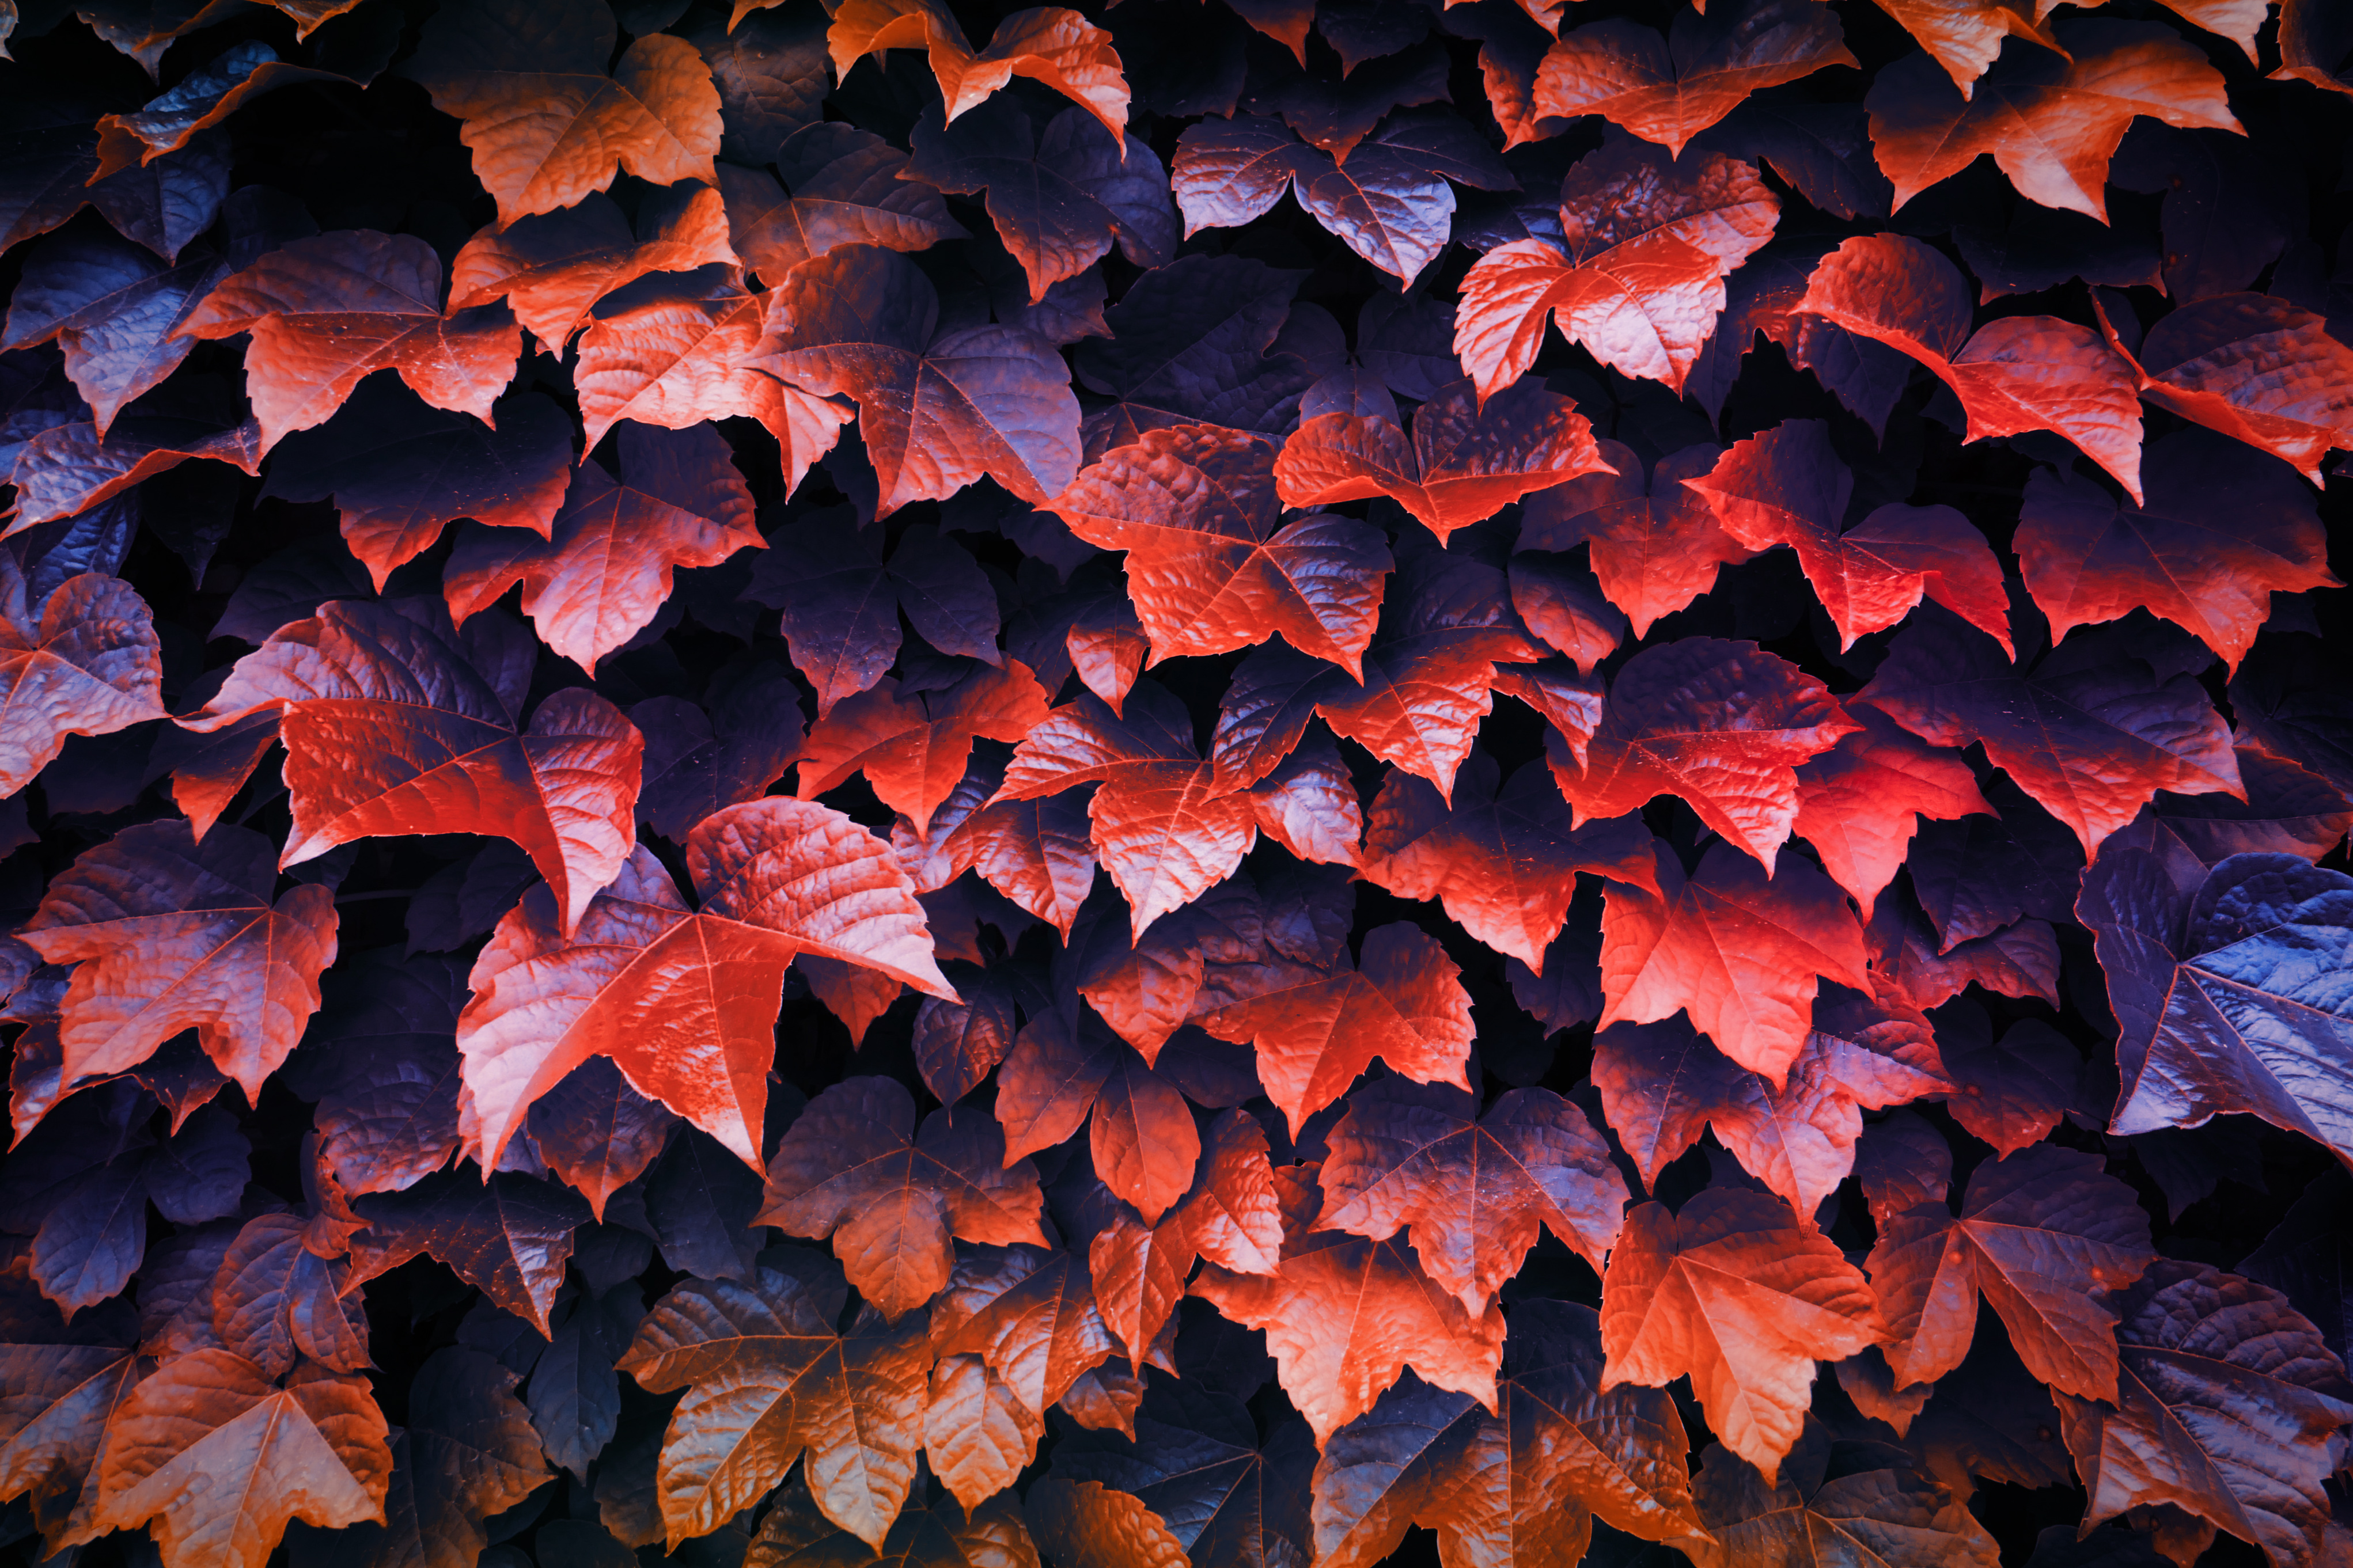 Autumn Leaves 4k Hd Nature 4k Wallpapers Images Backgrounds Photos And Pictures